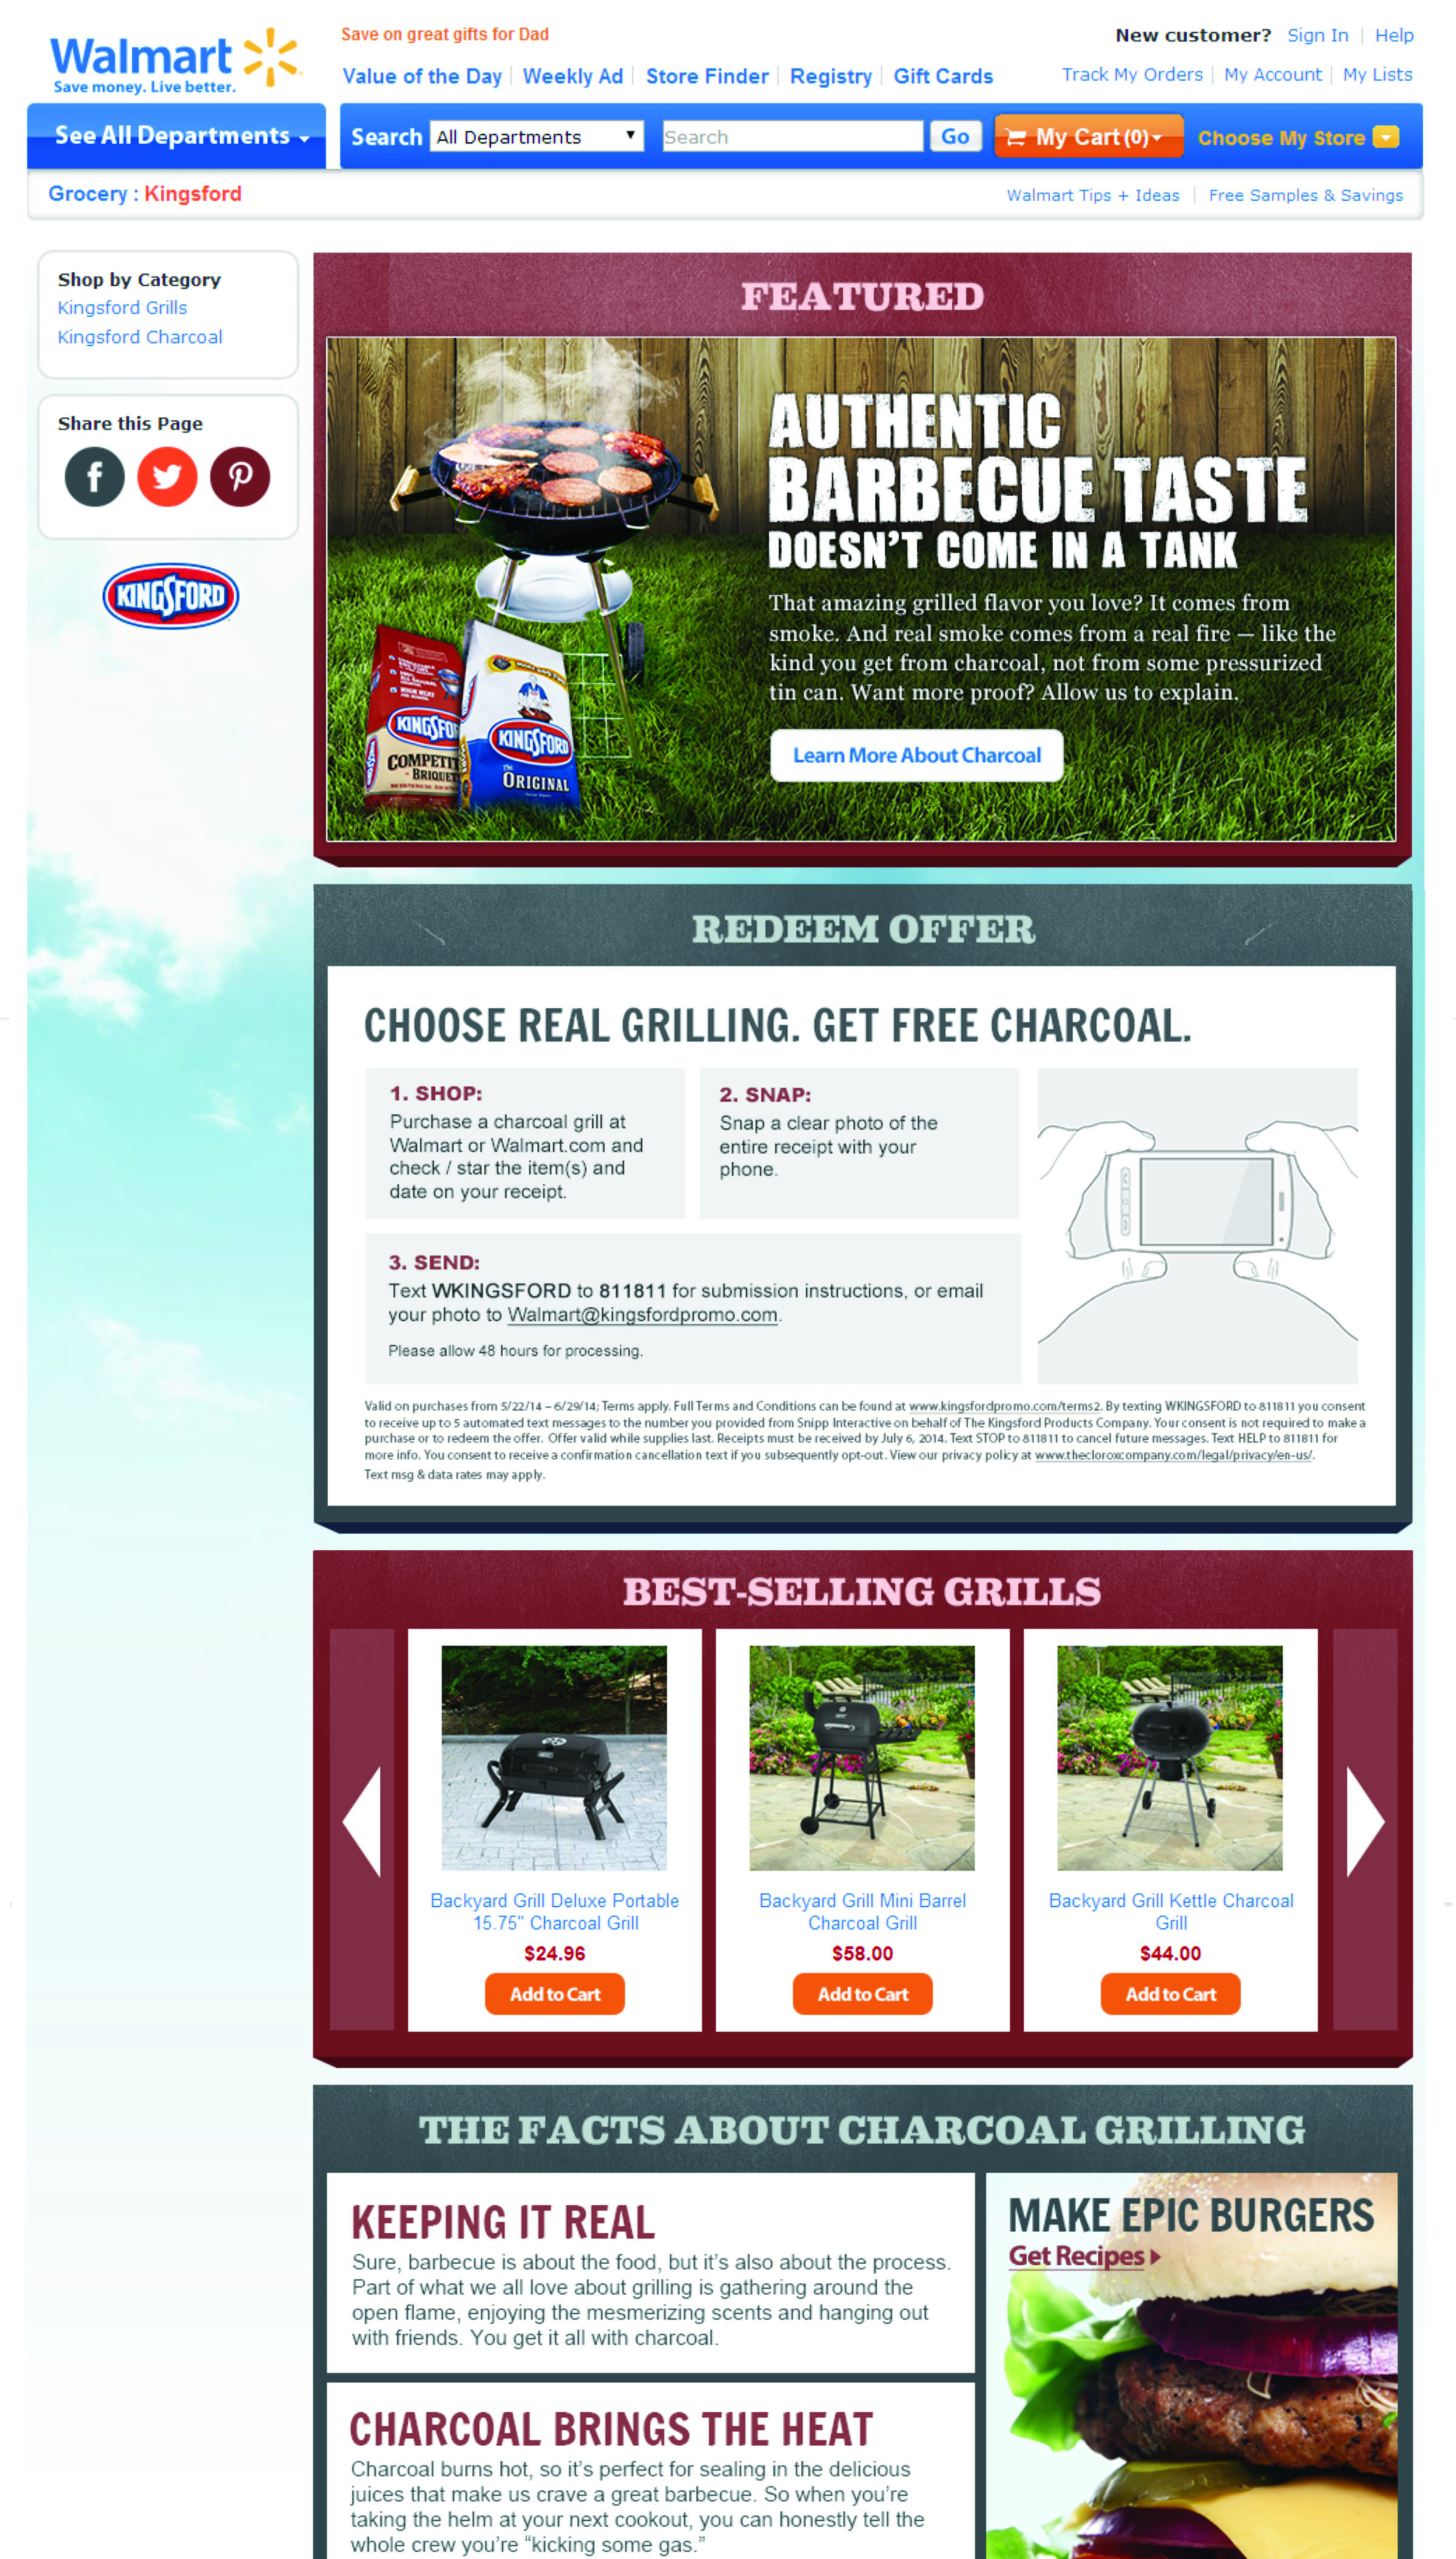 kingsford charcoal case analysis Trending analysis shows that gas grill purchases grew at an 8% pace in 2000, while the sale of charcoal grills declined by 3% it is important to convince kingsford's targeted consumers that charcoal grilling is superior to gas grilling.